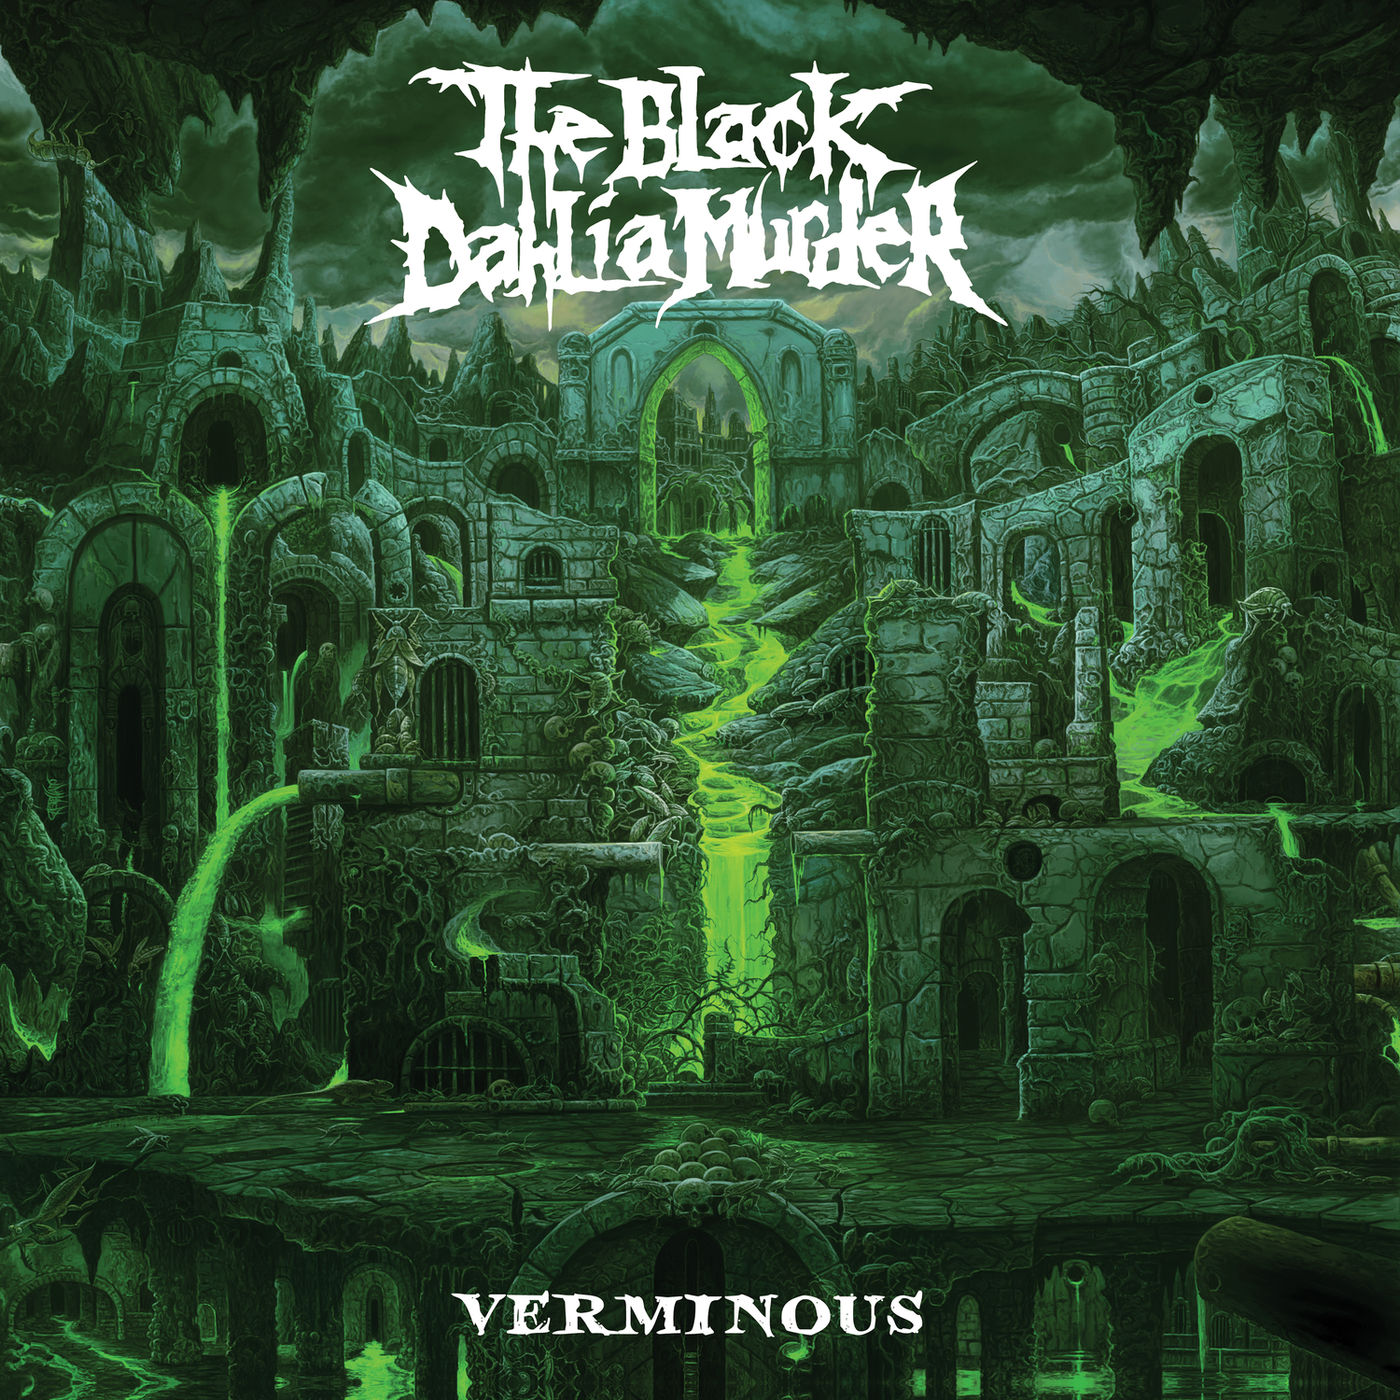 The Black Dahlia Murder - Child of Night [single] 2020)